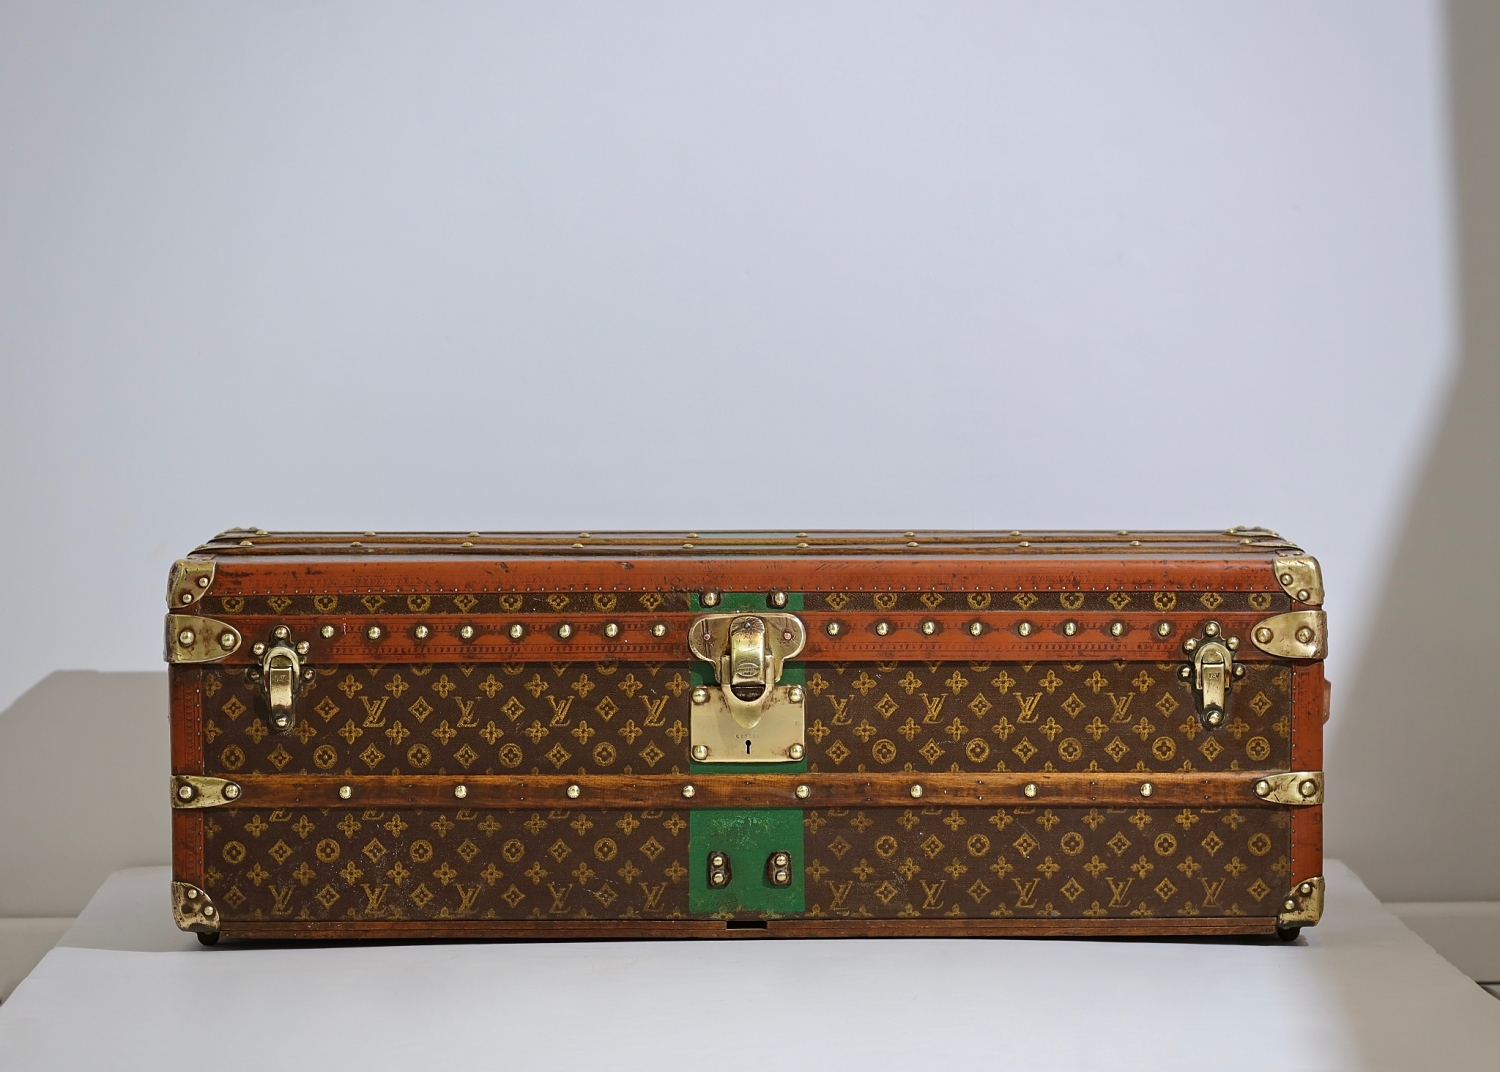 ell-traveled-trunk-louis-vuitton-thumbnail-product-5667-1